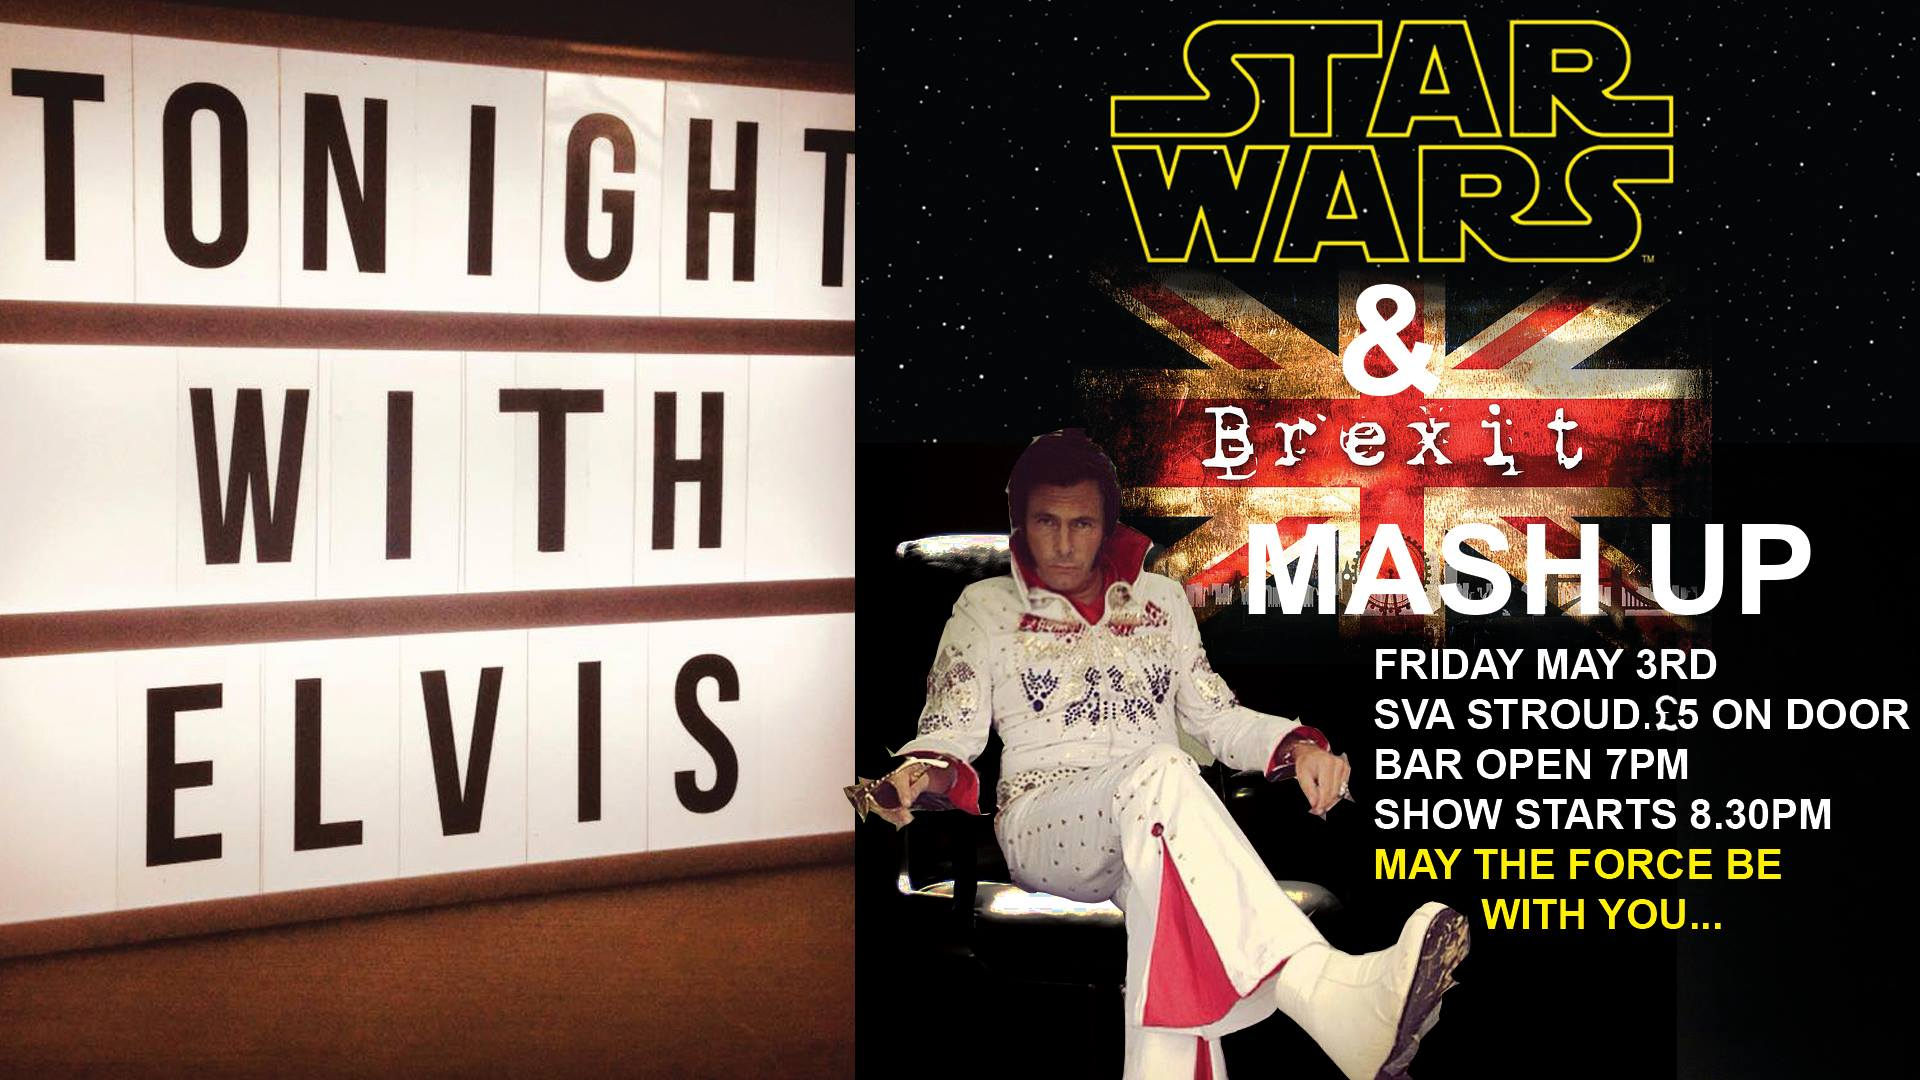 elvis star wars and brexit mash up.jpg